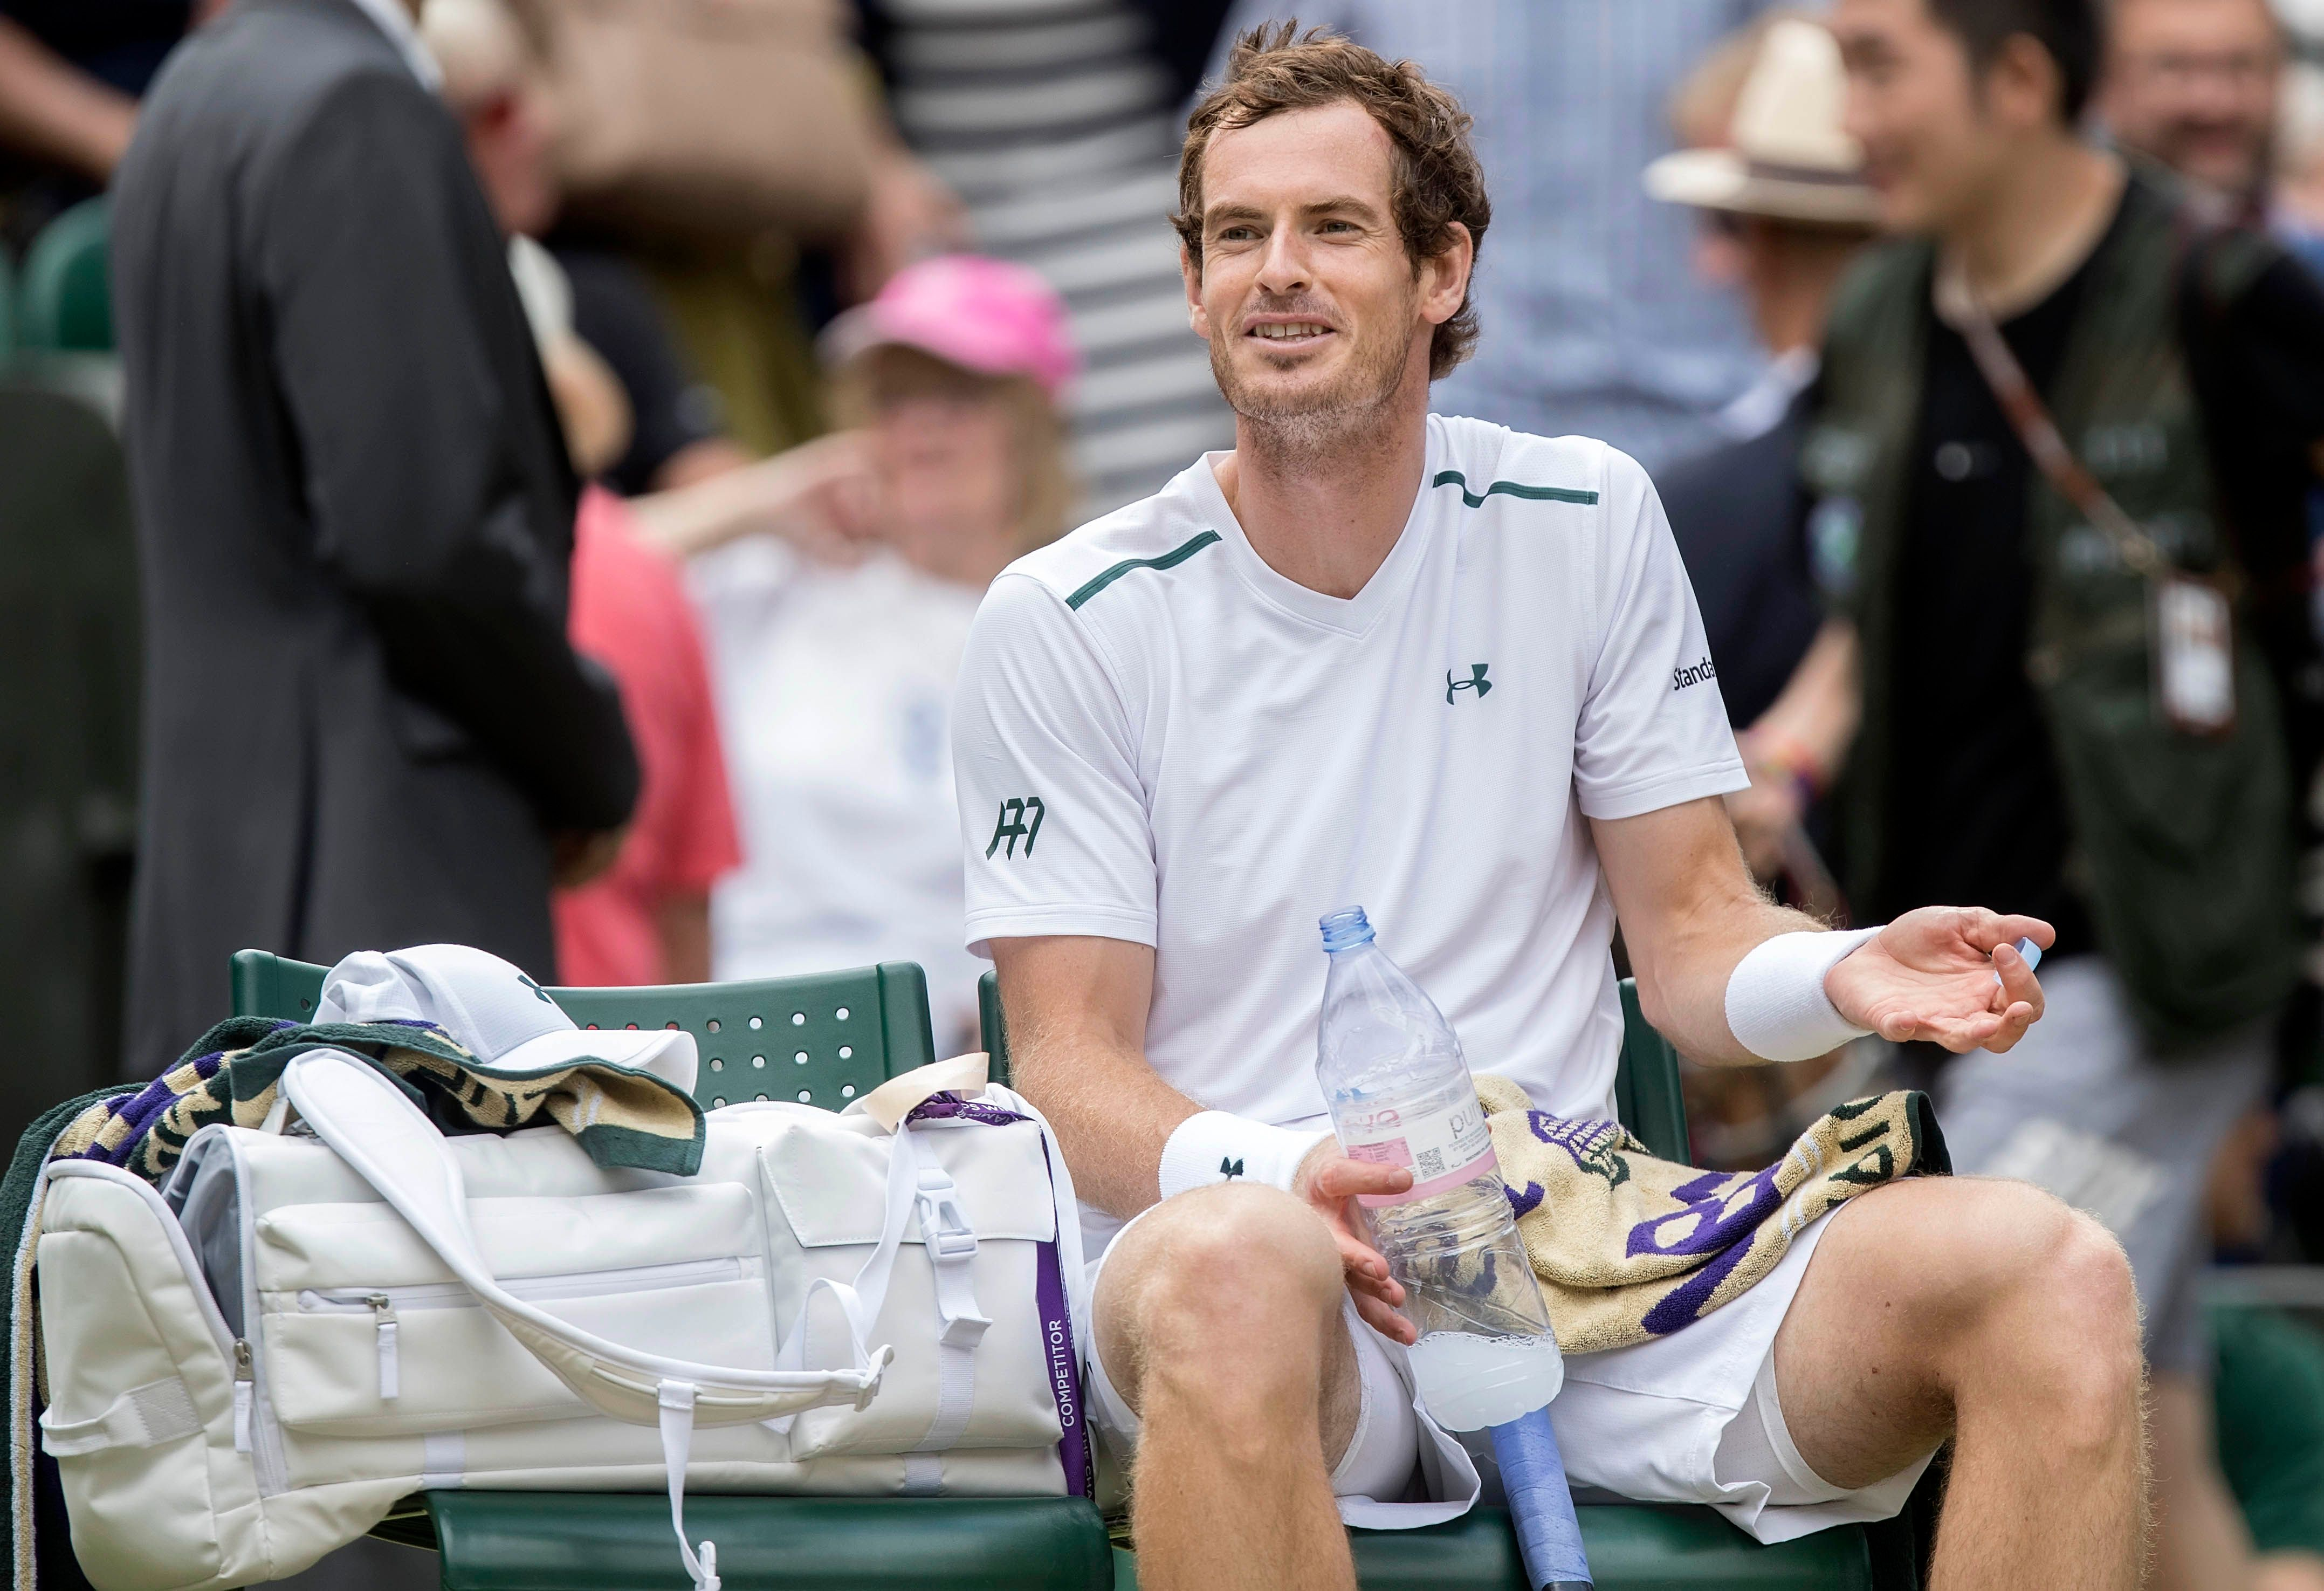 Andy Murray has hip surgery, hopes for Wimbledon return